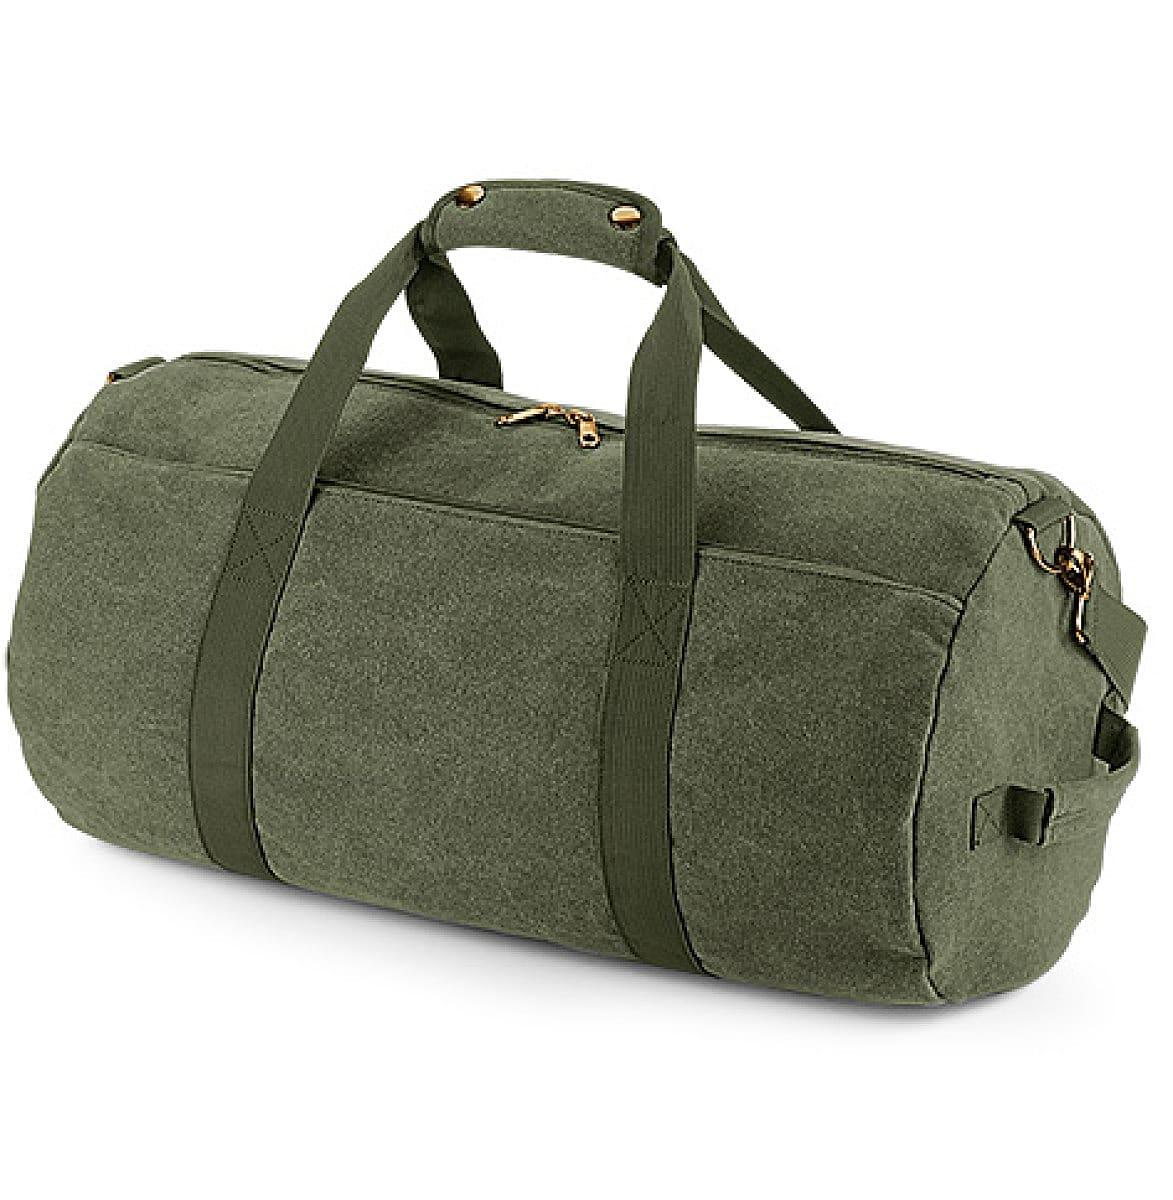 Bagbase Vintage Canval Barrel Bag in Vintage Military Green (Product Code: BG655)